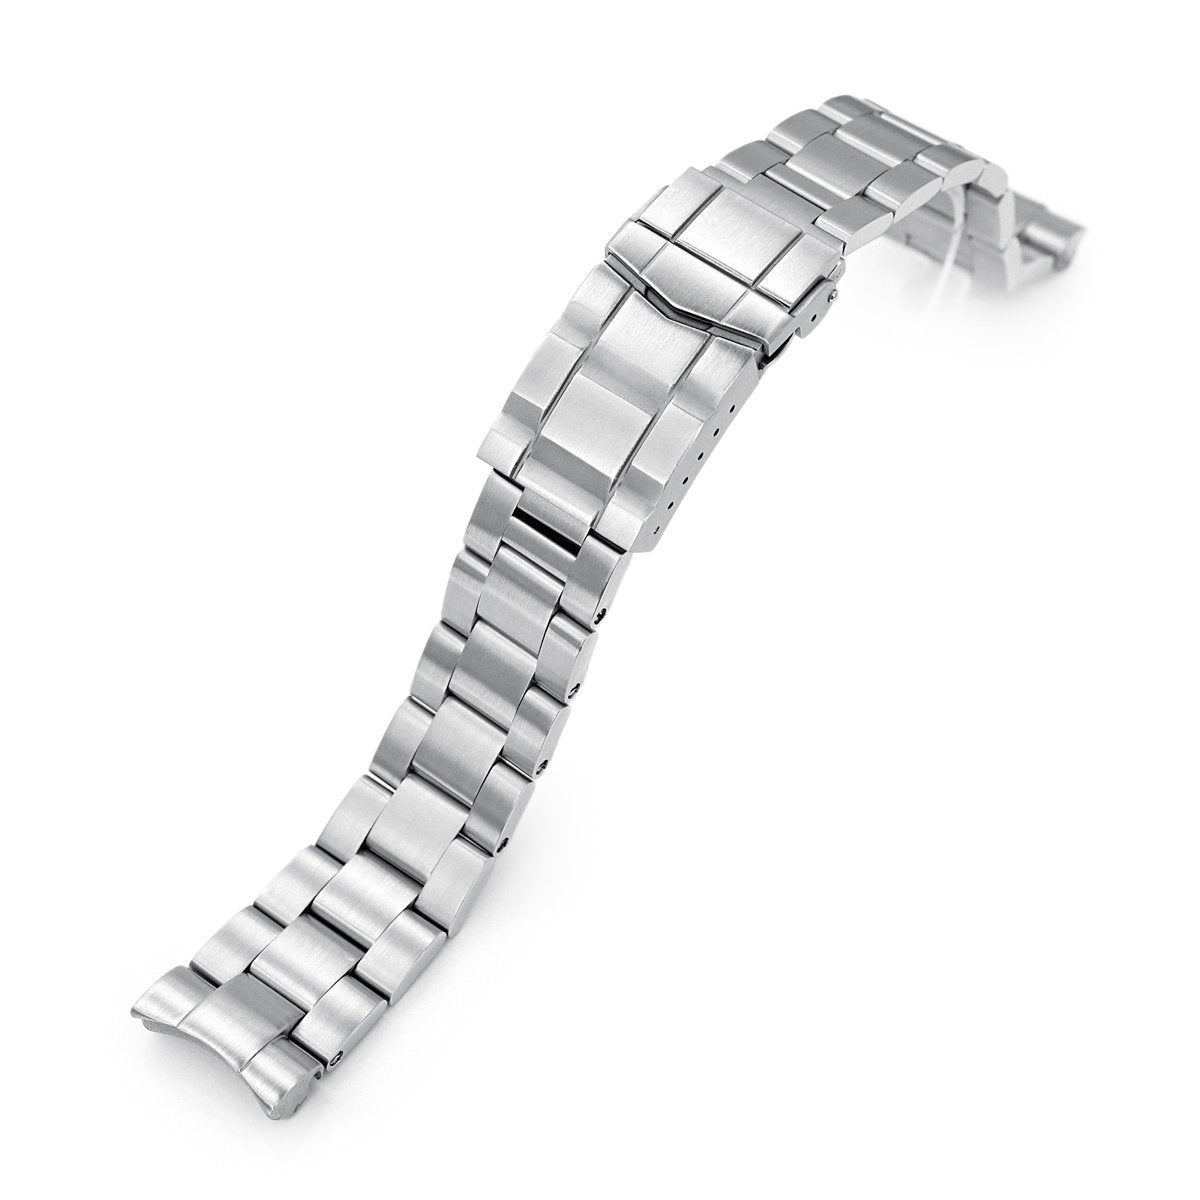 20mm Super-O Boyer 316L Stainless Steel Watch Bracelet for Seiko Mini Turtles SRPC35 SUB Clasp Brushed Strapcode Watch Bands